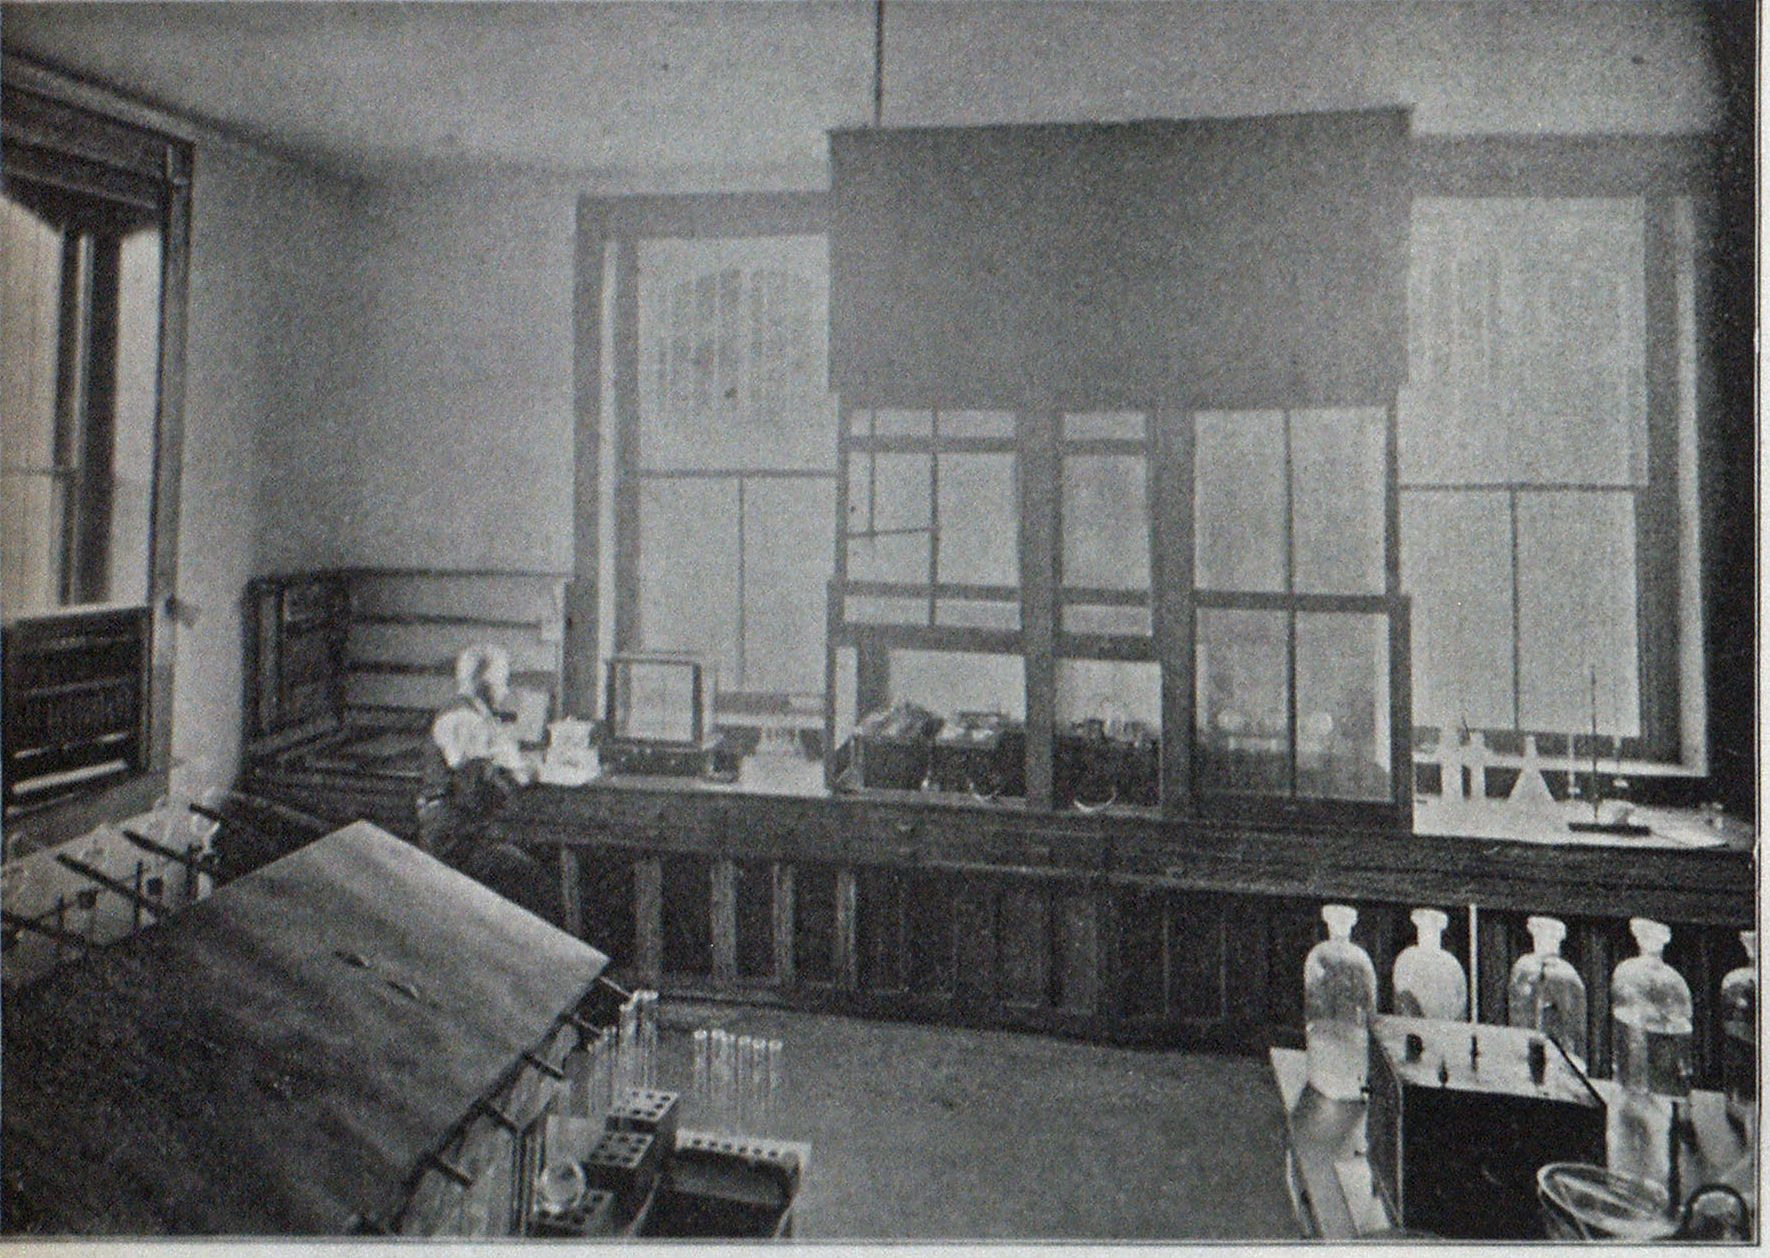 INTERIOR OF ILLINOIS STATE LABORATORY.